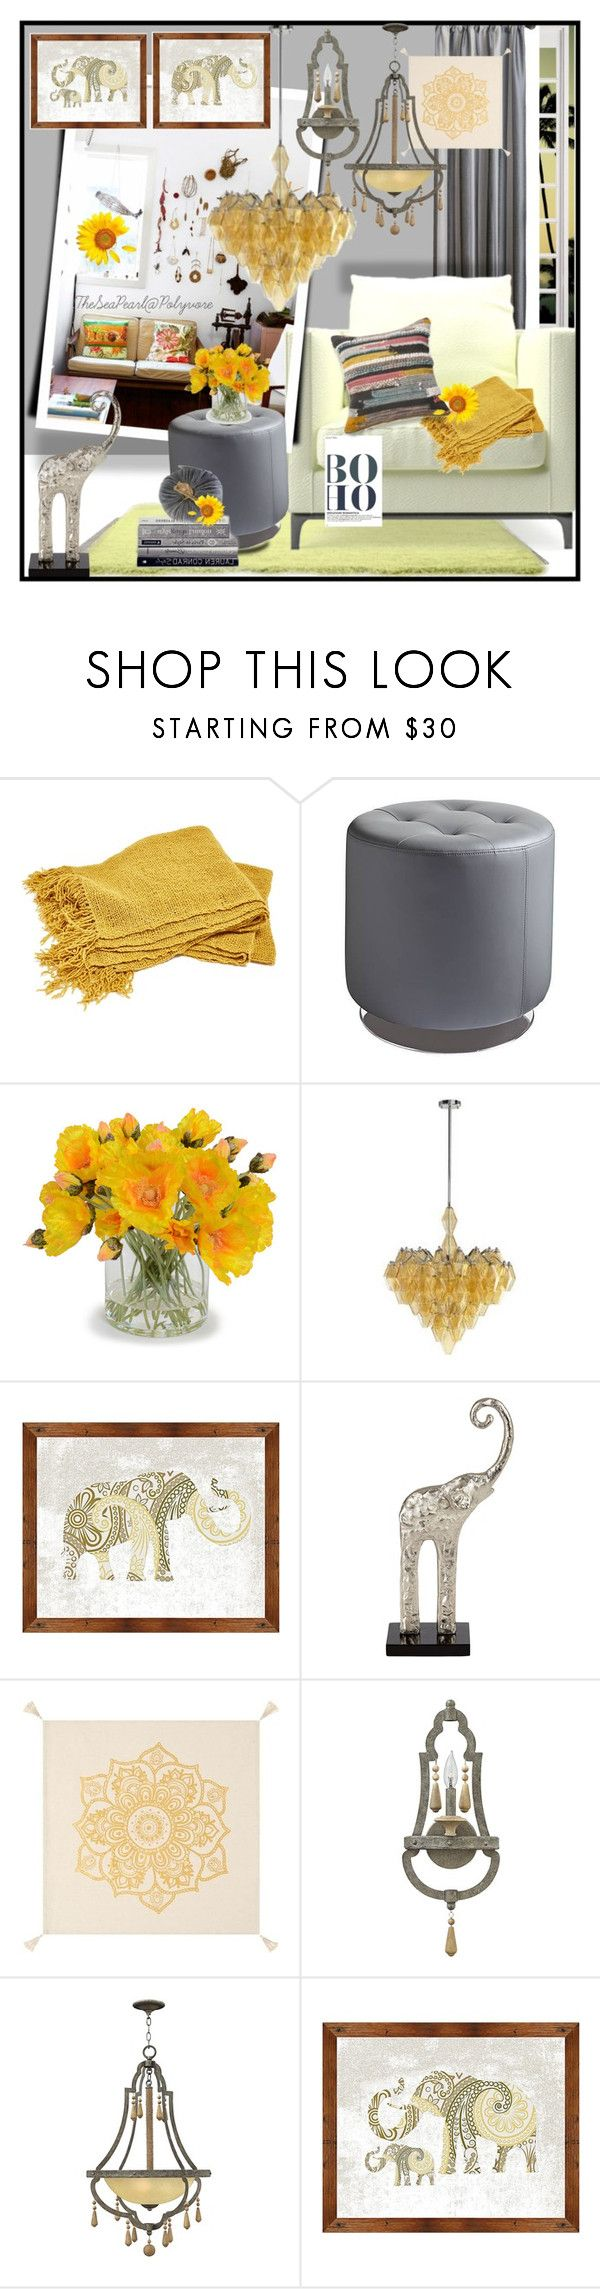 """""""Modern Bohemian Space"""" by theseapearl ❤ liked on Polyvore featuring interior, interiors, interior design, home, home decor, interior decorating, New Growth Designs, Cyan Design, Universal Lighting and Decor and PBteen"""